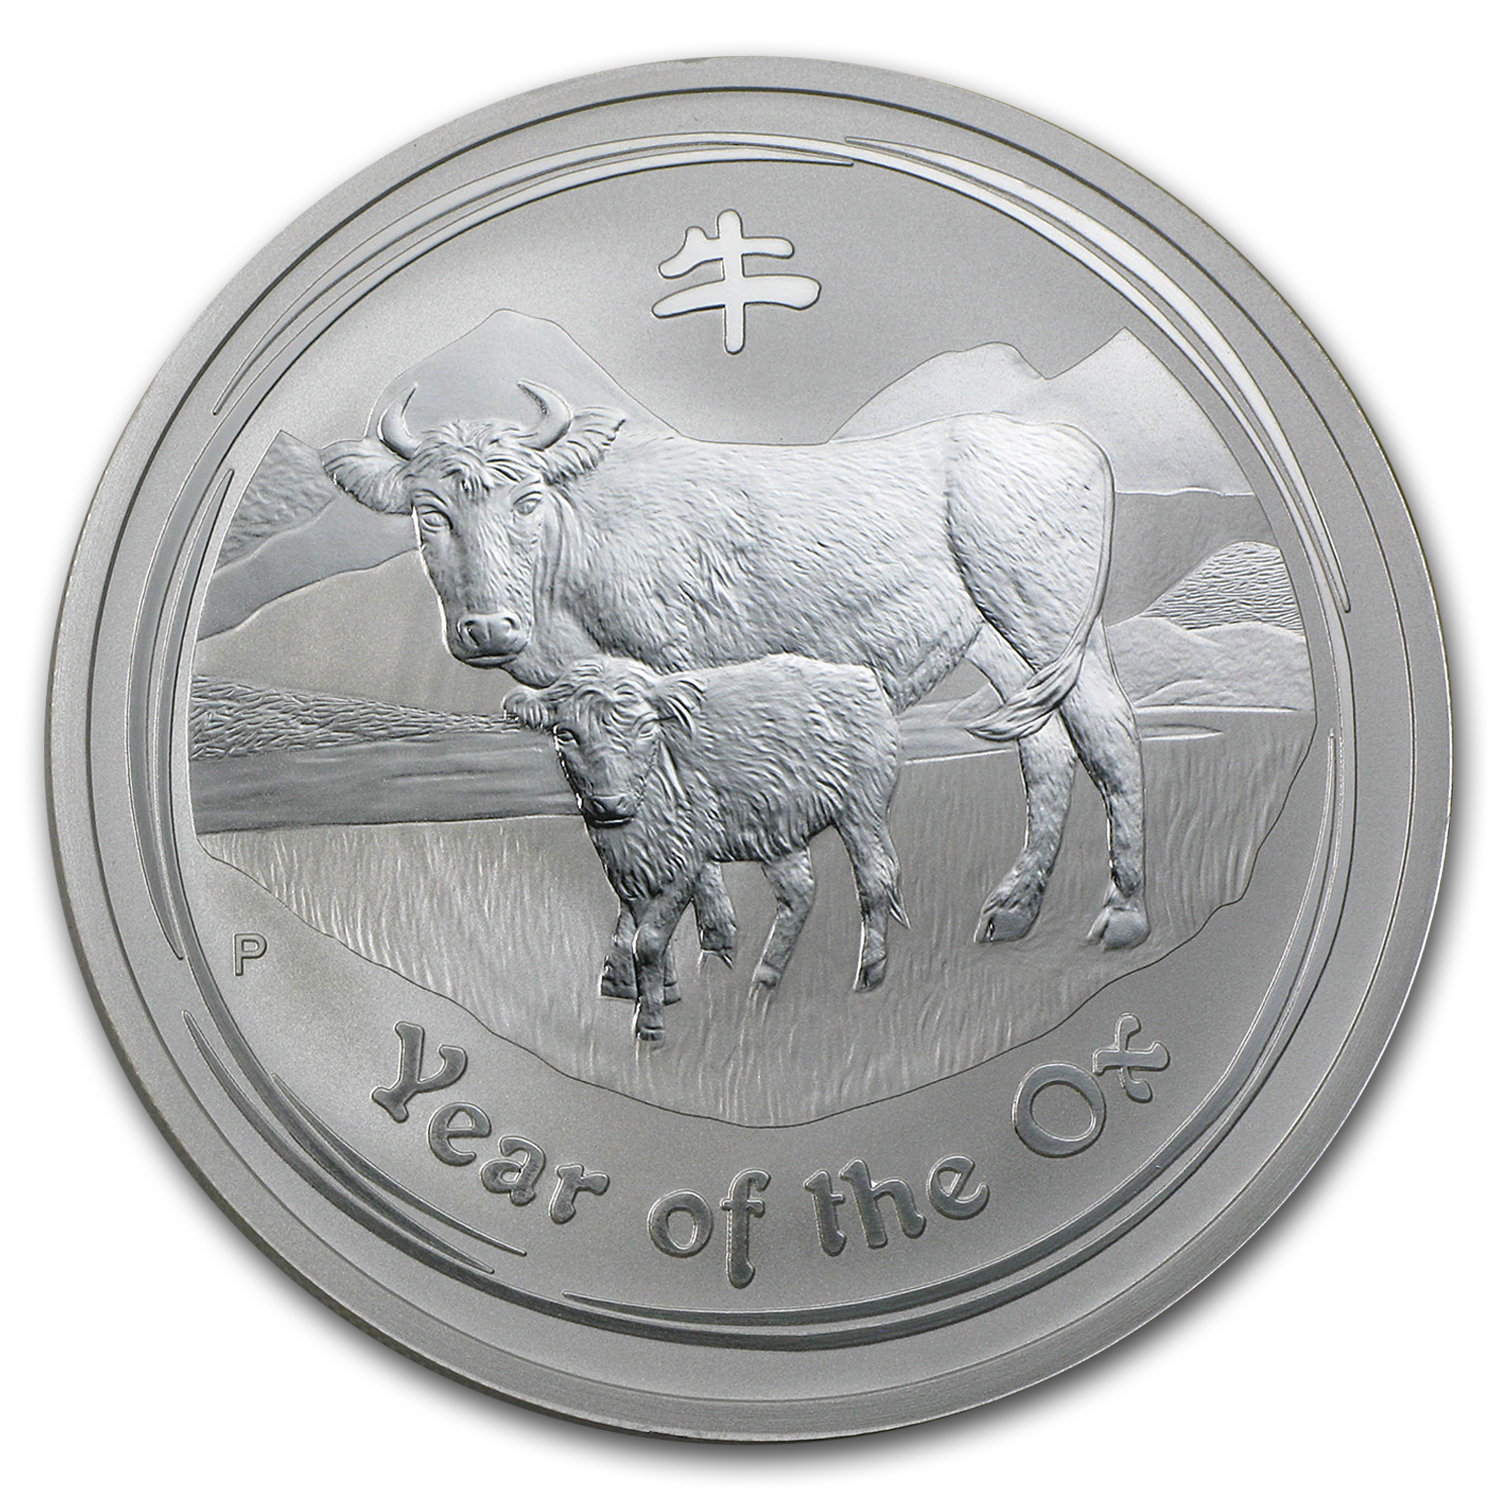 2009 2 oz Silver Australian Year of the Ox Coin (Series II)